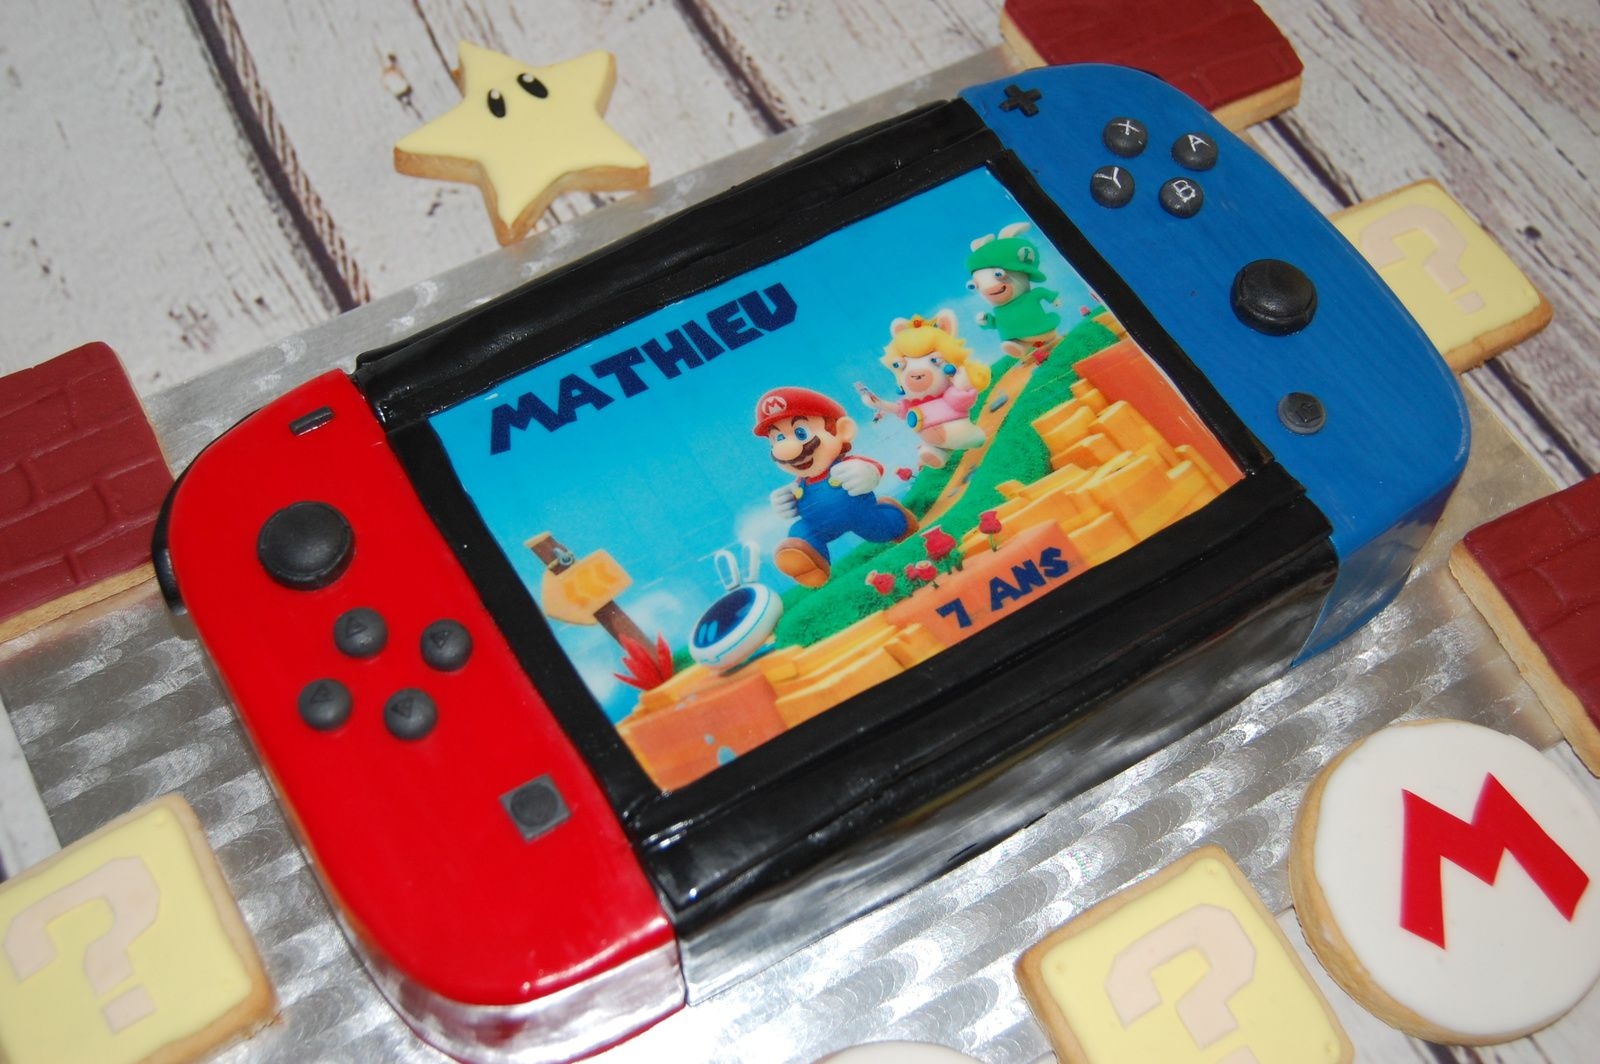 GATEAU CONSOLE SWITCH DE CHEZ NINTENDO - KINGDOM BATTLE